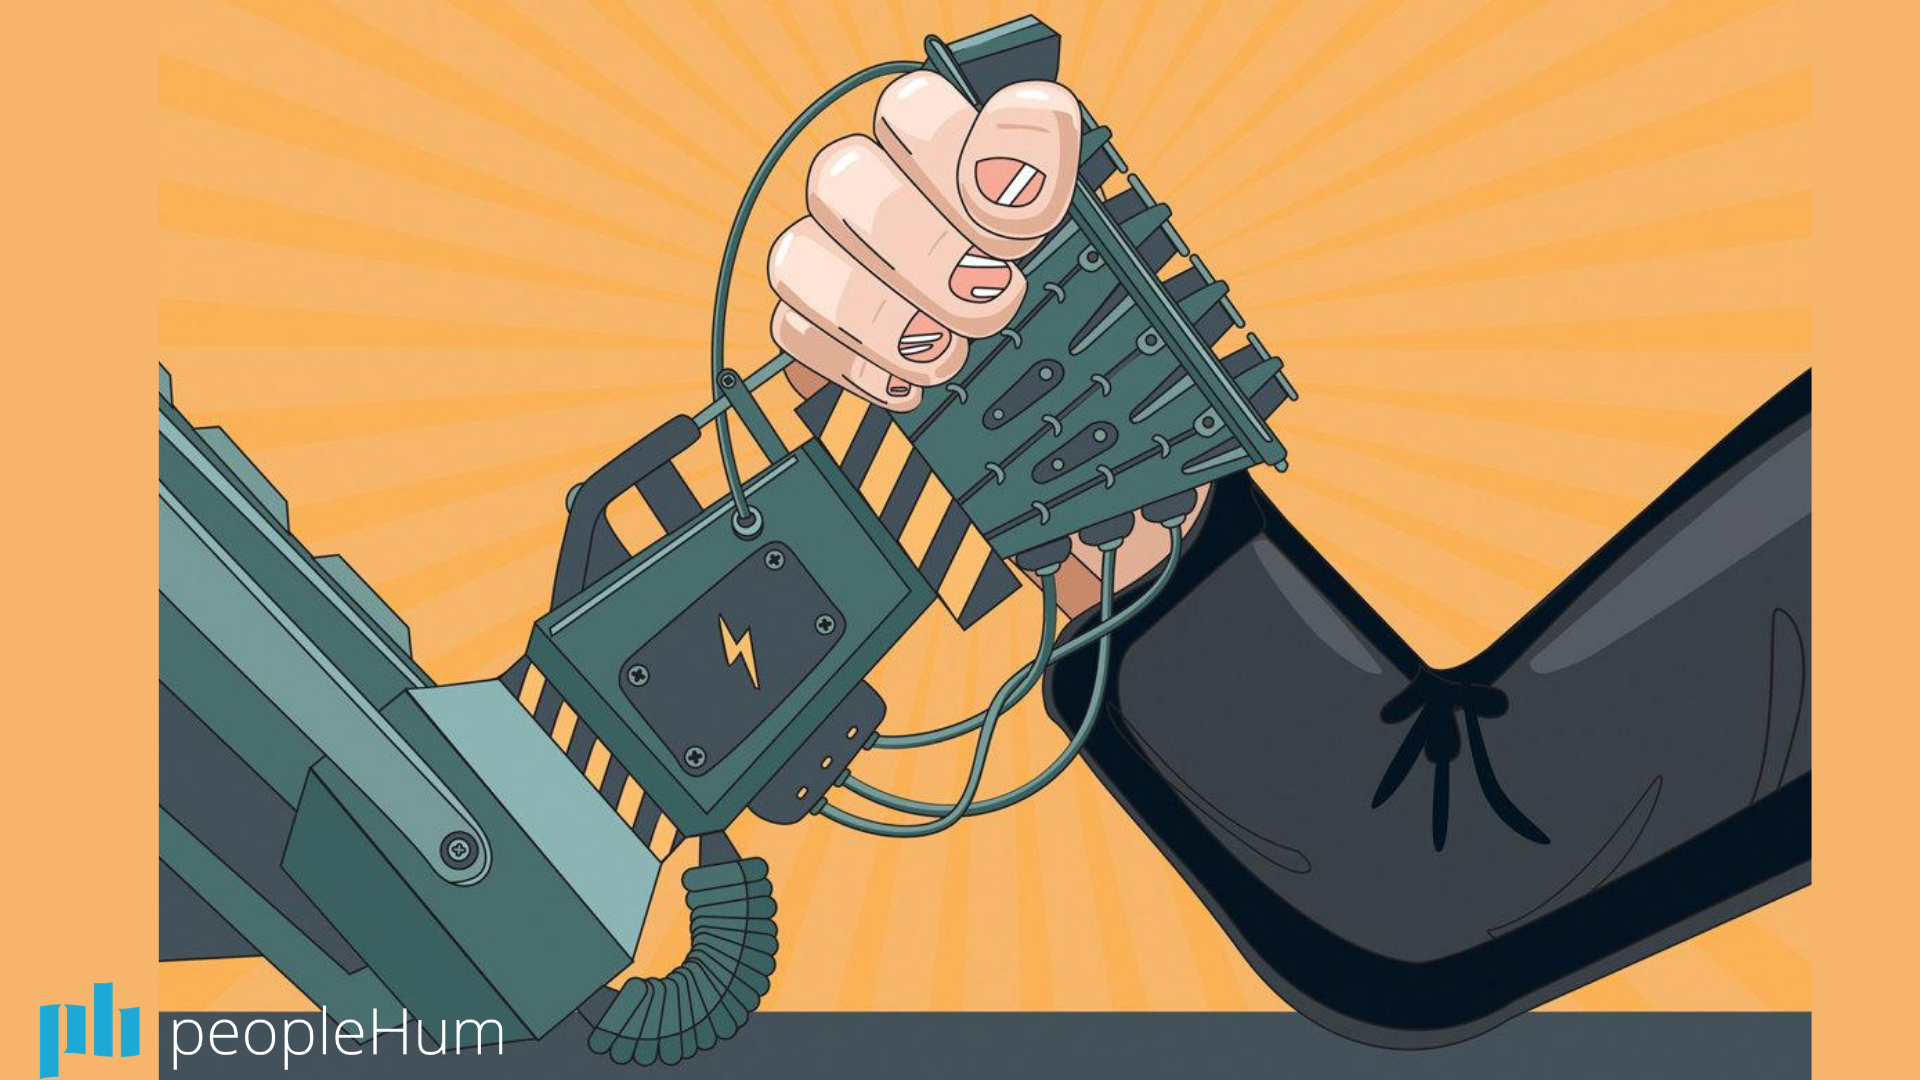 7 ways AI is automating processes at the workplace